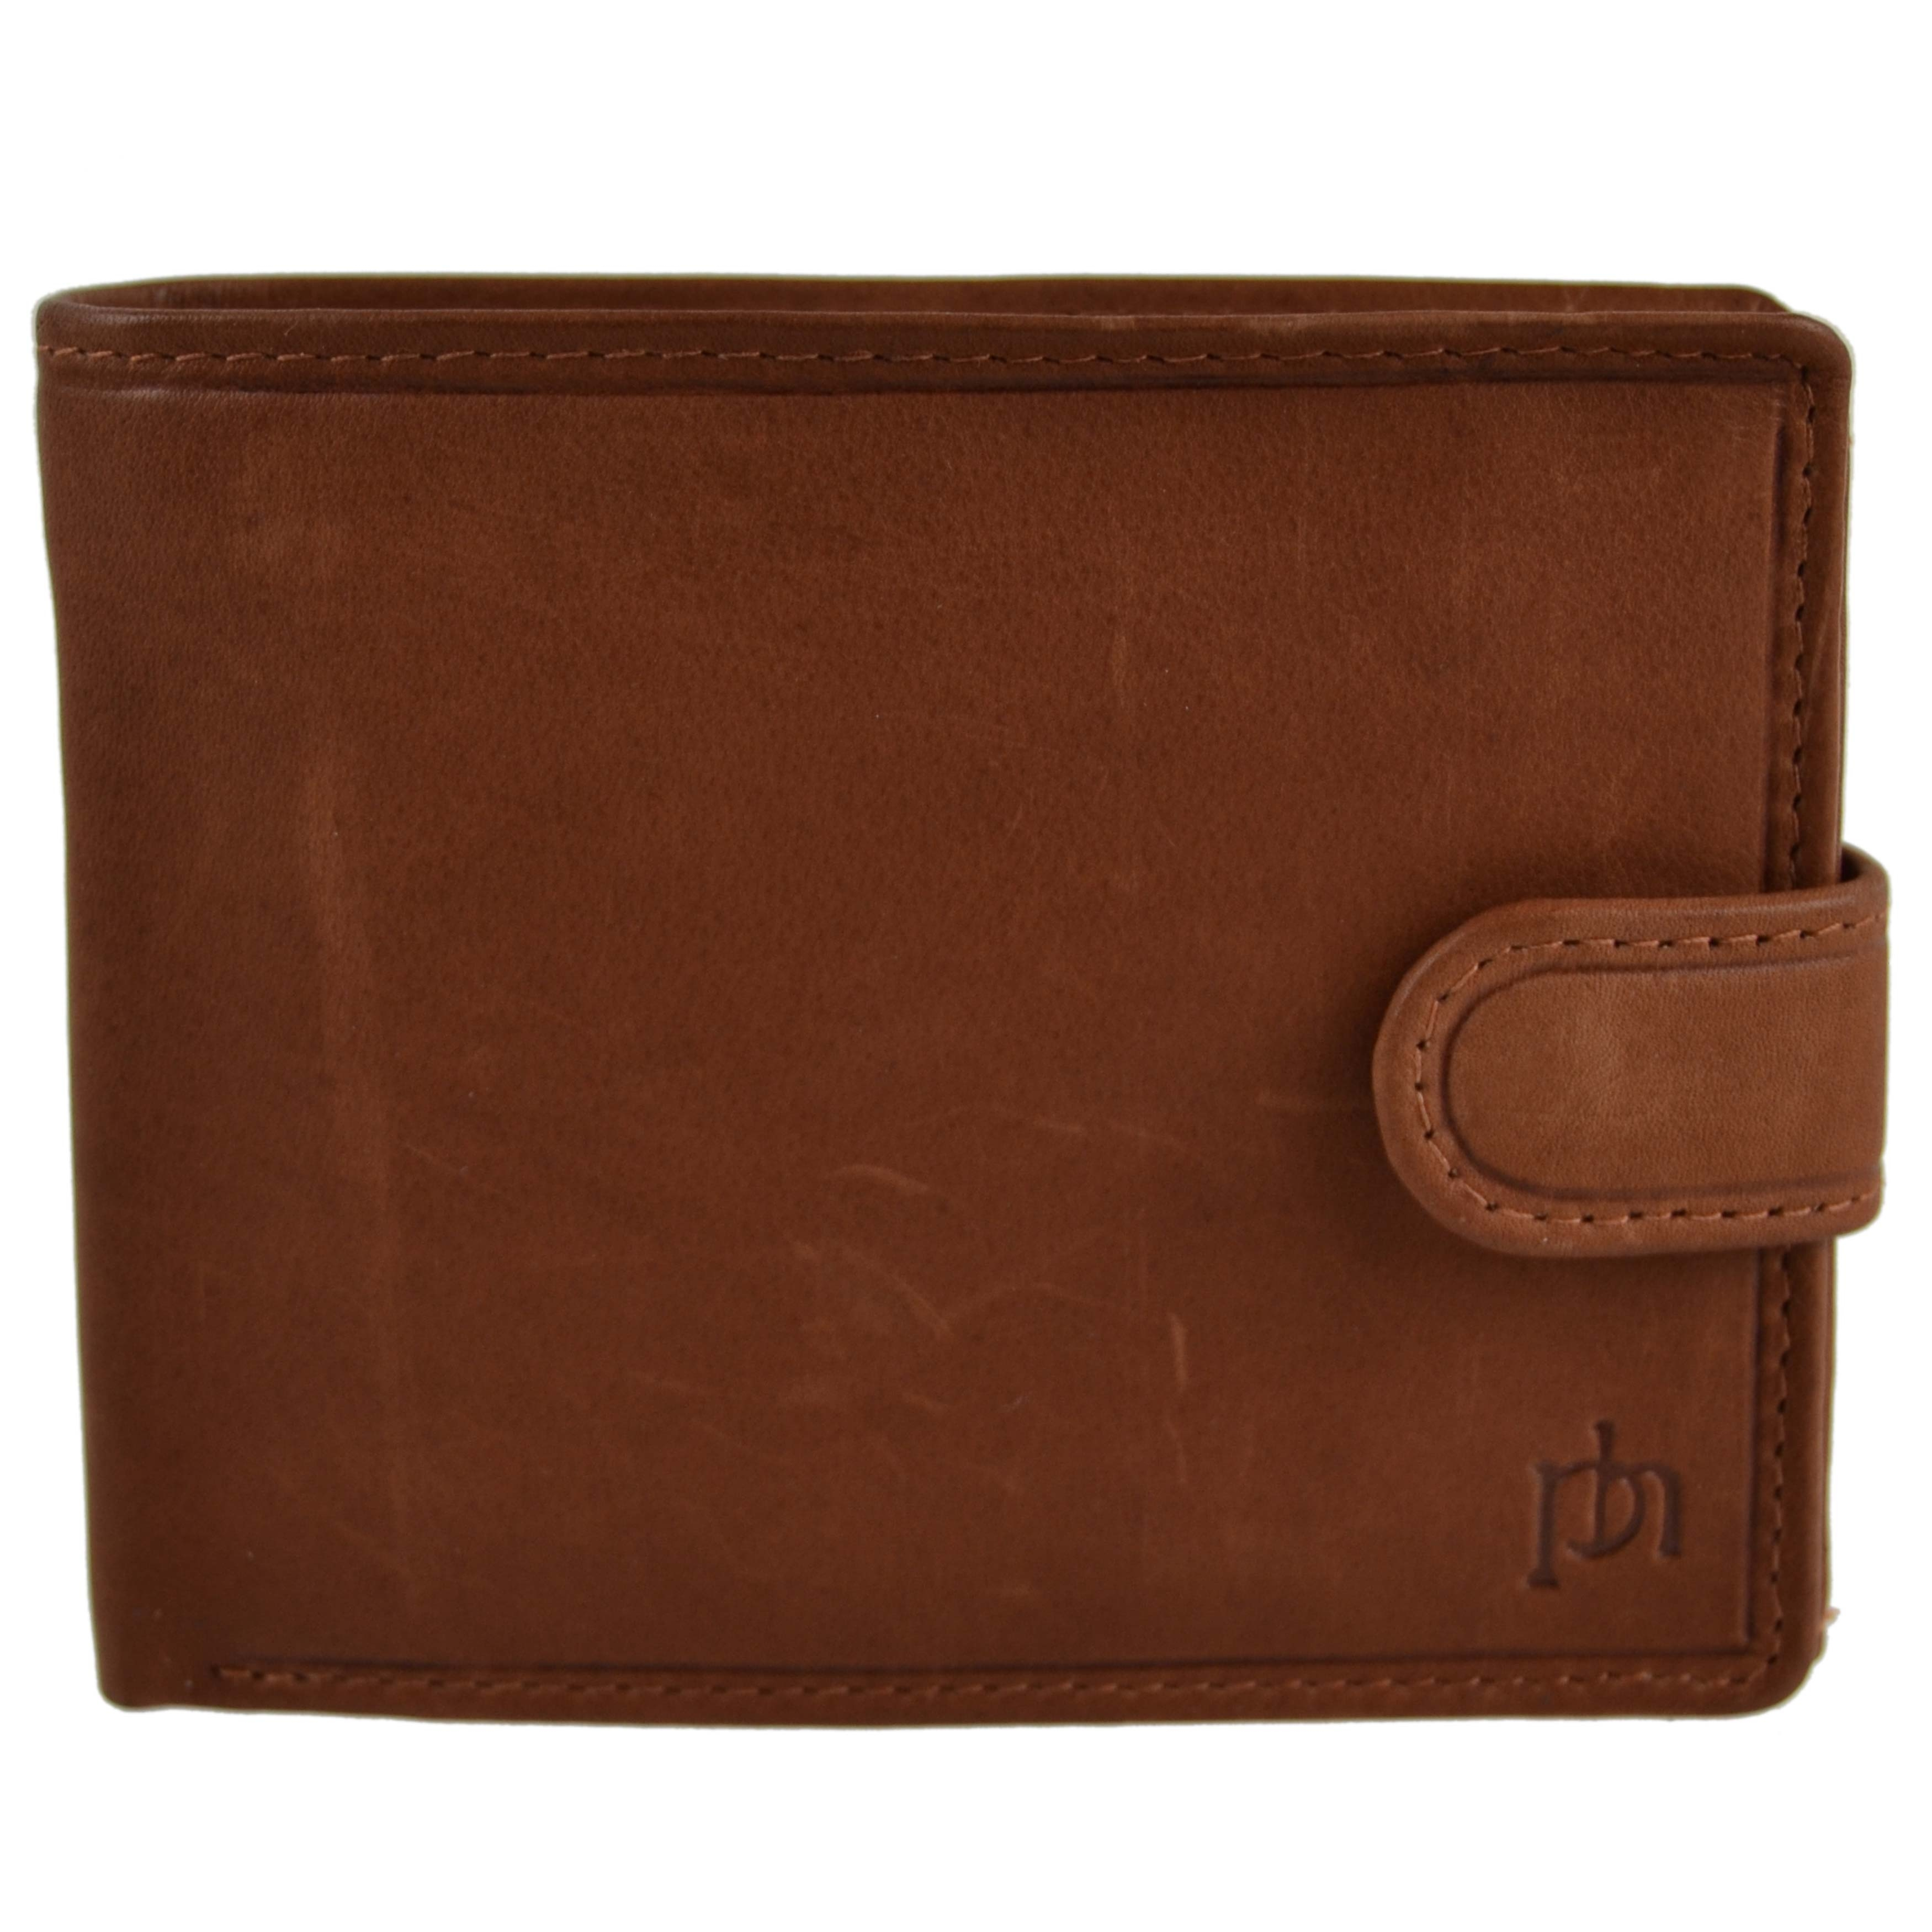 Mens-Quality-Leather-Wallet-by-Prime-Hide-Gift-Boxed-Stylish-with-Coin-Pocket thumbnail 16